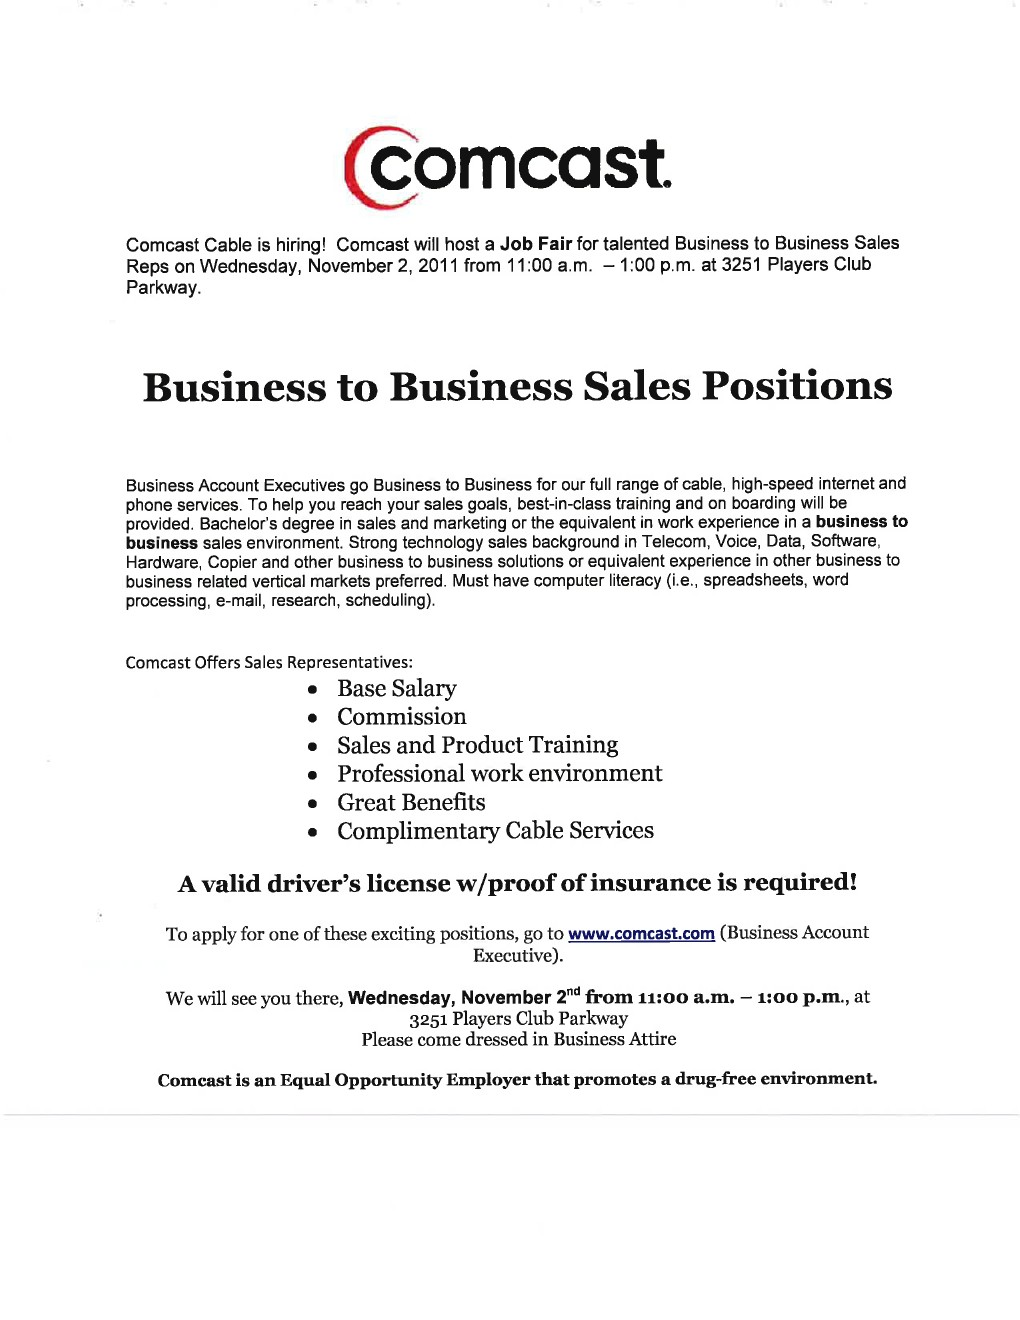 Comcast – Business To Business Sales Reps Job Fair 11 2 11